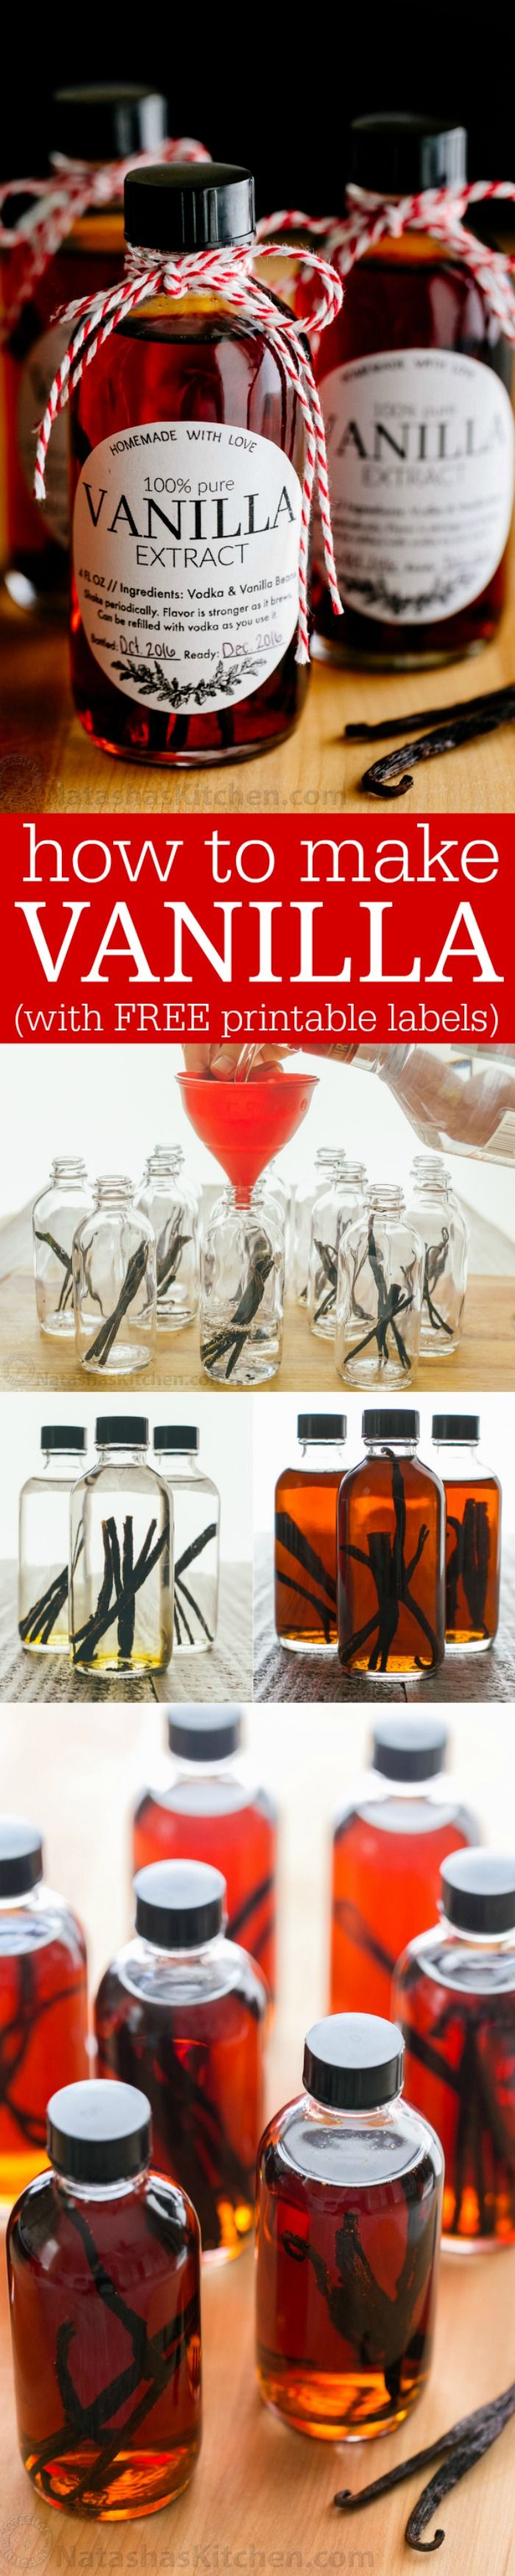 Learn how to make vanilla extract with 2 ingredients! Homemade vanilla extract will be your secret ingredient for baking. The best vanilla extract recipe! | natashaskitchen.com (Minutes Cake)